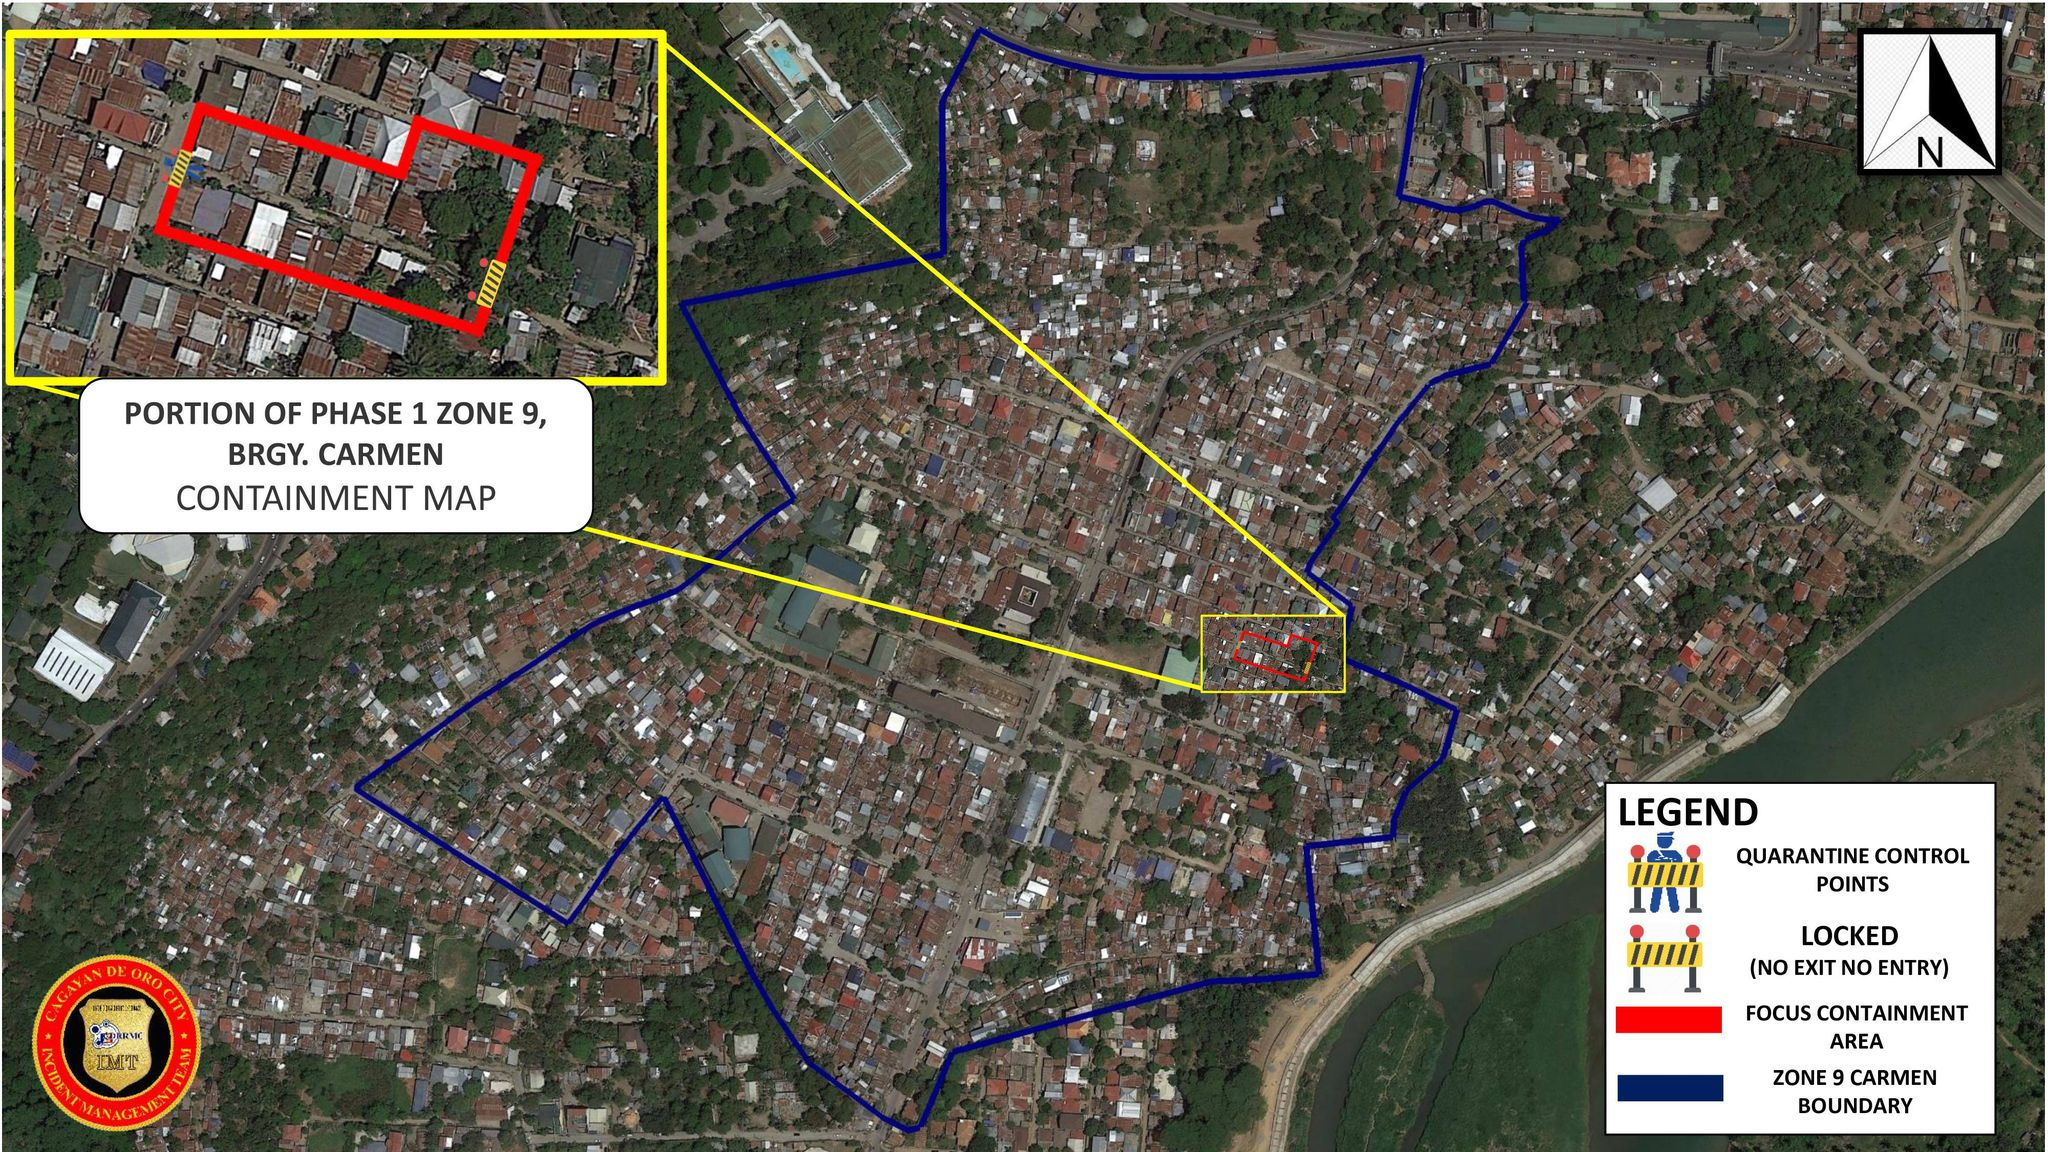 focus-containment-phase1-zone9-brgy-carmen-1